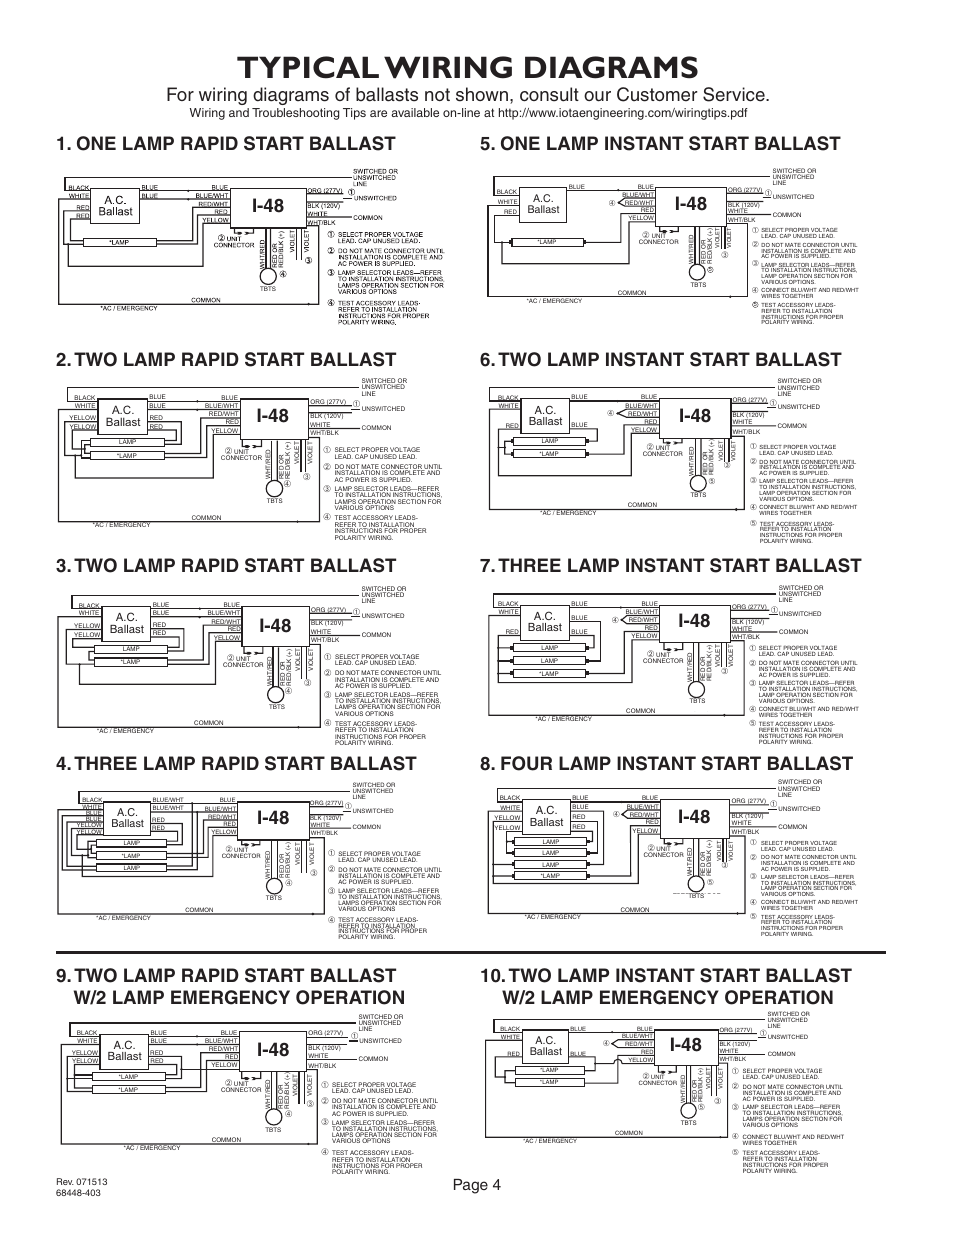 hight resolution of typical wiring diagrams i 48 page 4 a c ballast iota i